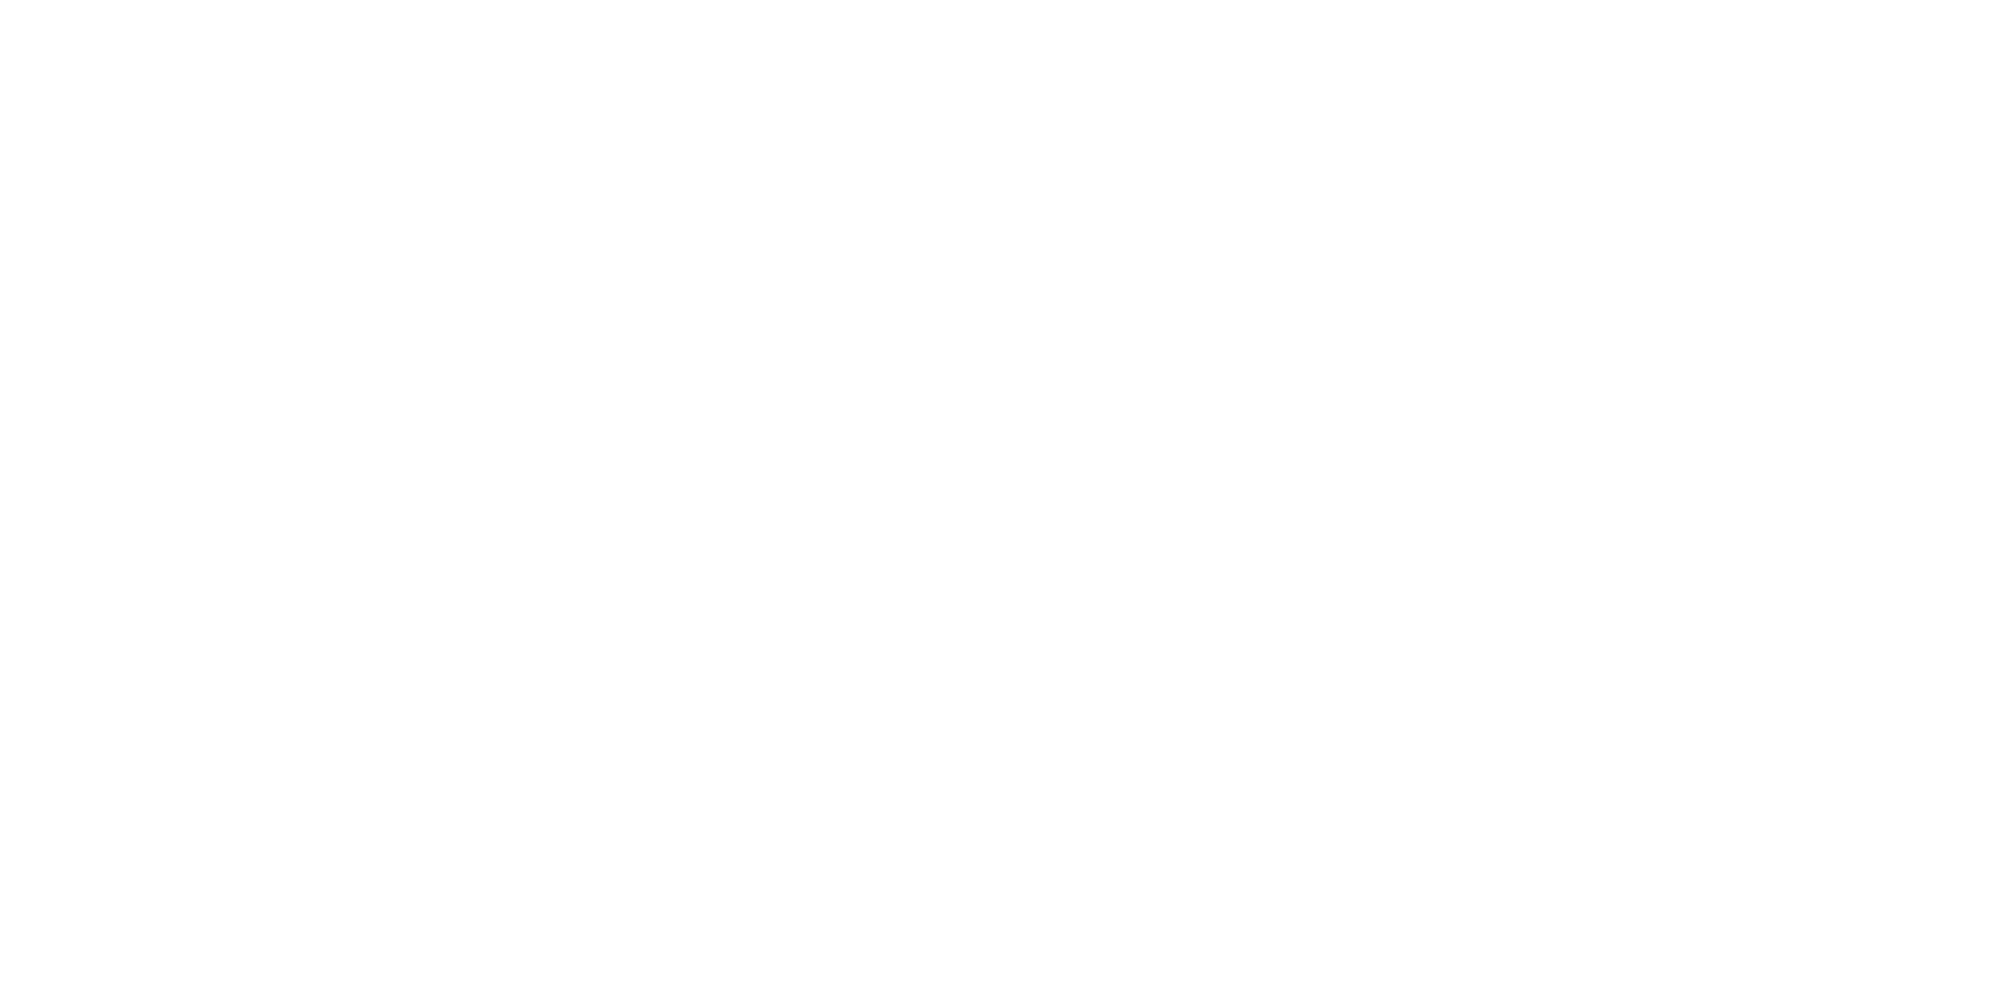 Sciencetips, une dose de sciences